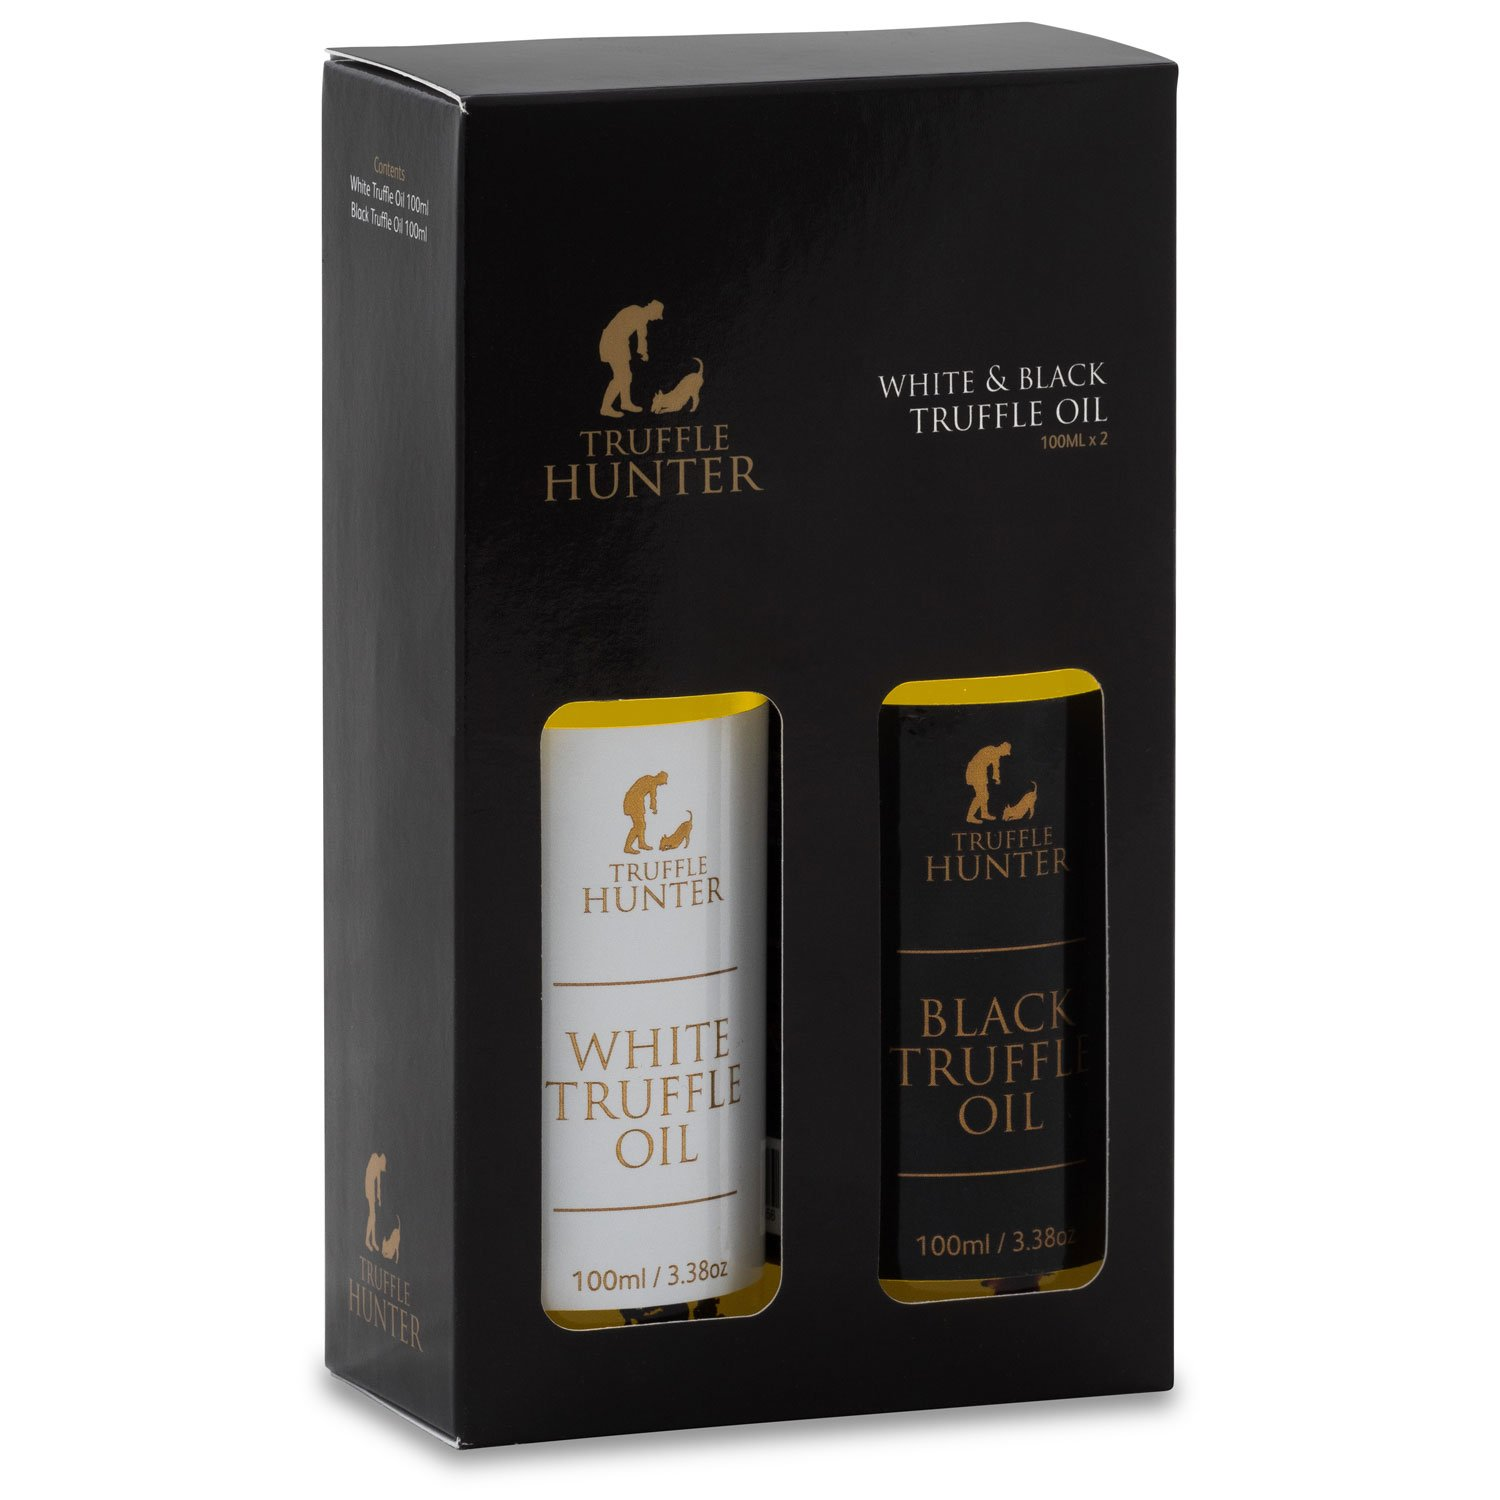 TruffleHunter Black & White Truffle Oil Set (2 x 3.38 Oz)